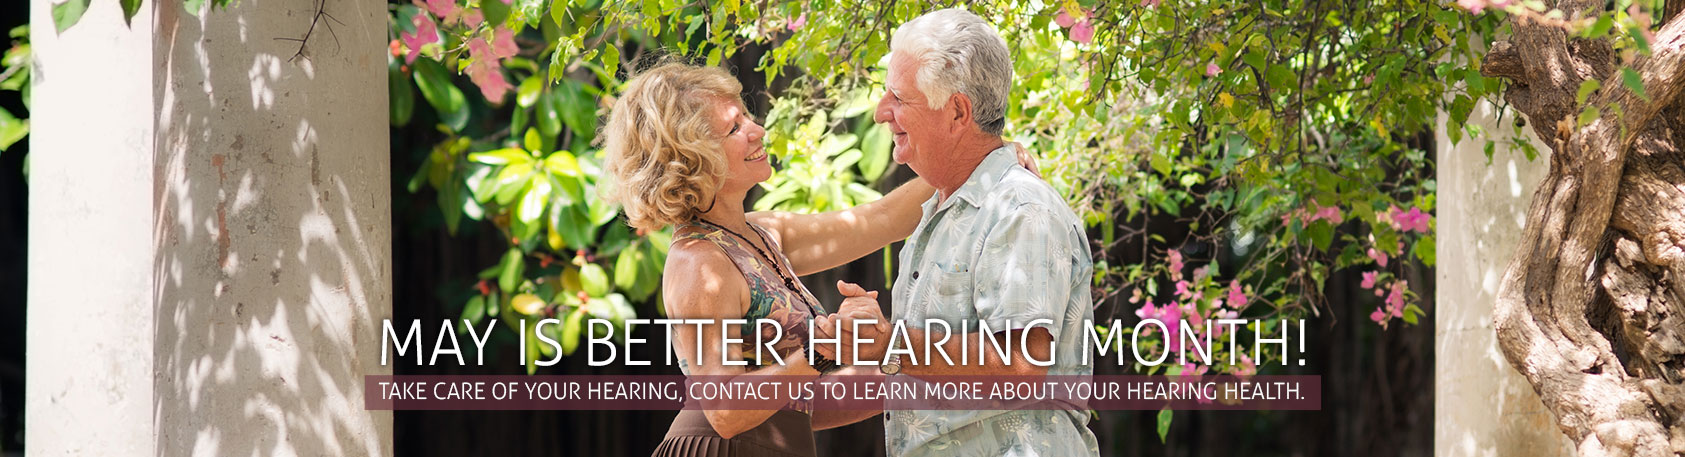 Better Hearing Month Banner - Centerville Hearing Center